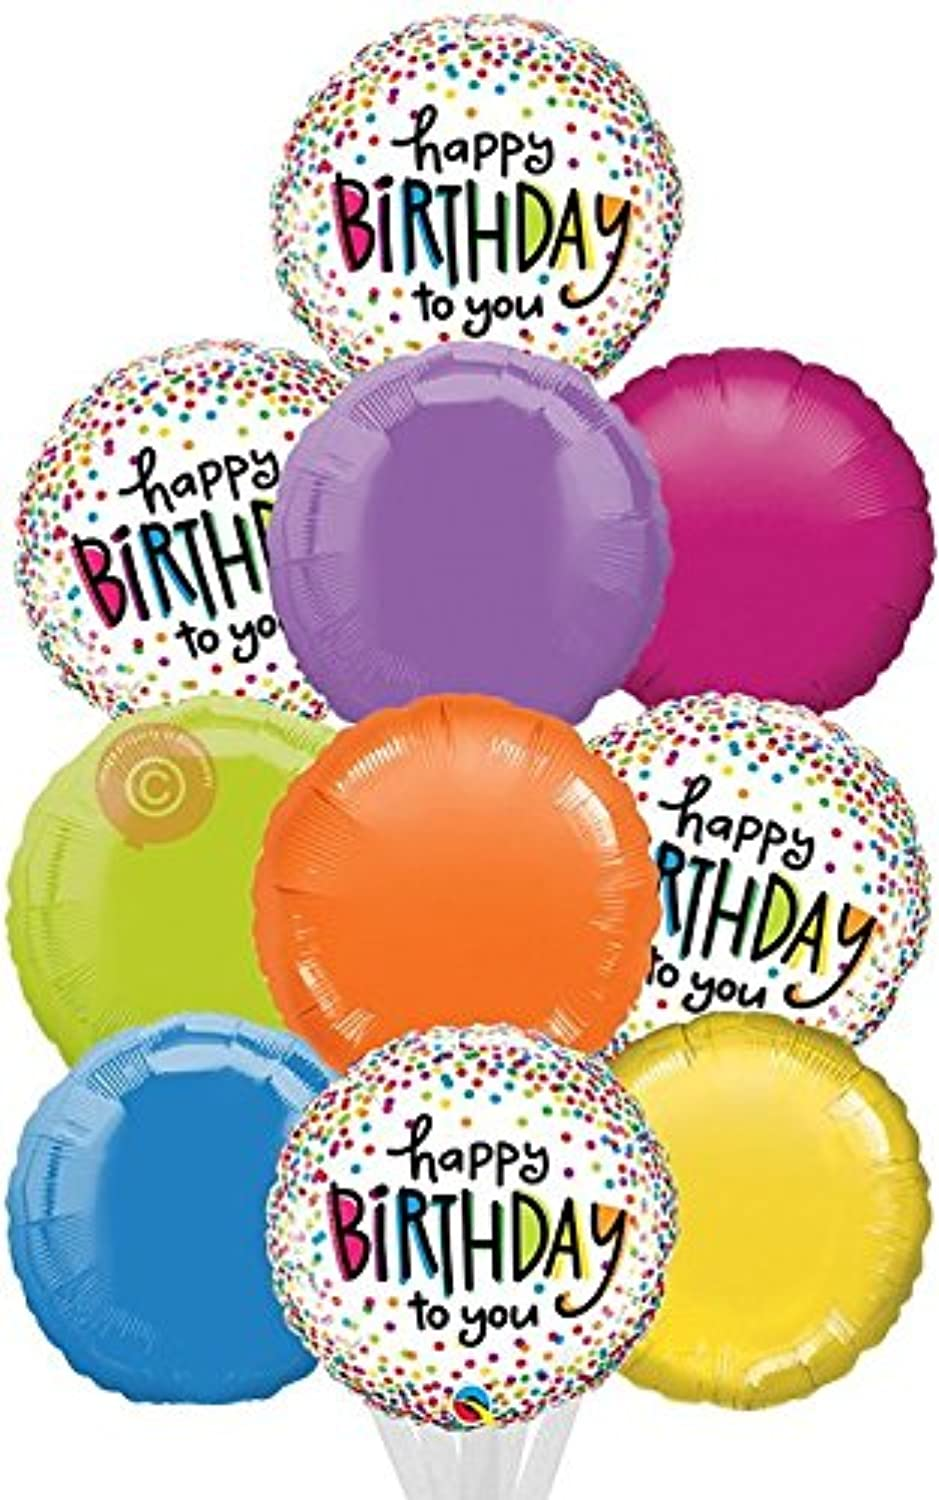 Happy Birthday Sprinkled Dots  Inflated Birthday Helium Balloon Delivered in a Box  Biggest Bouquet  10 Balloons  Bloonaway